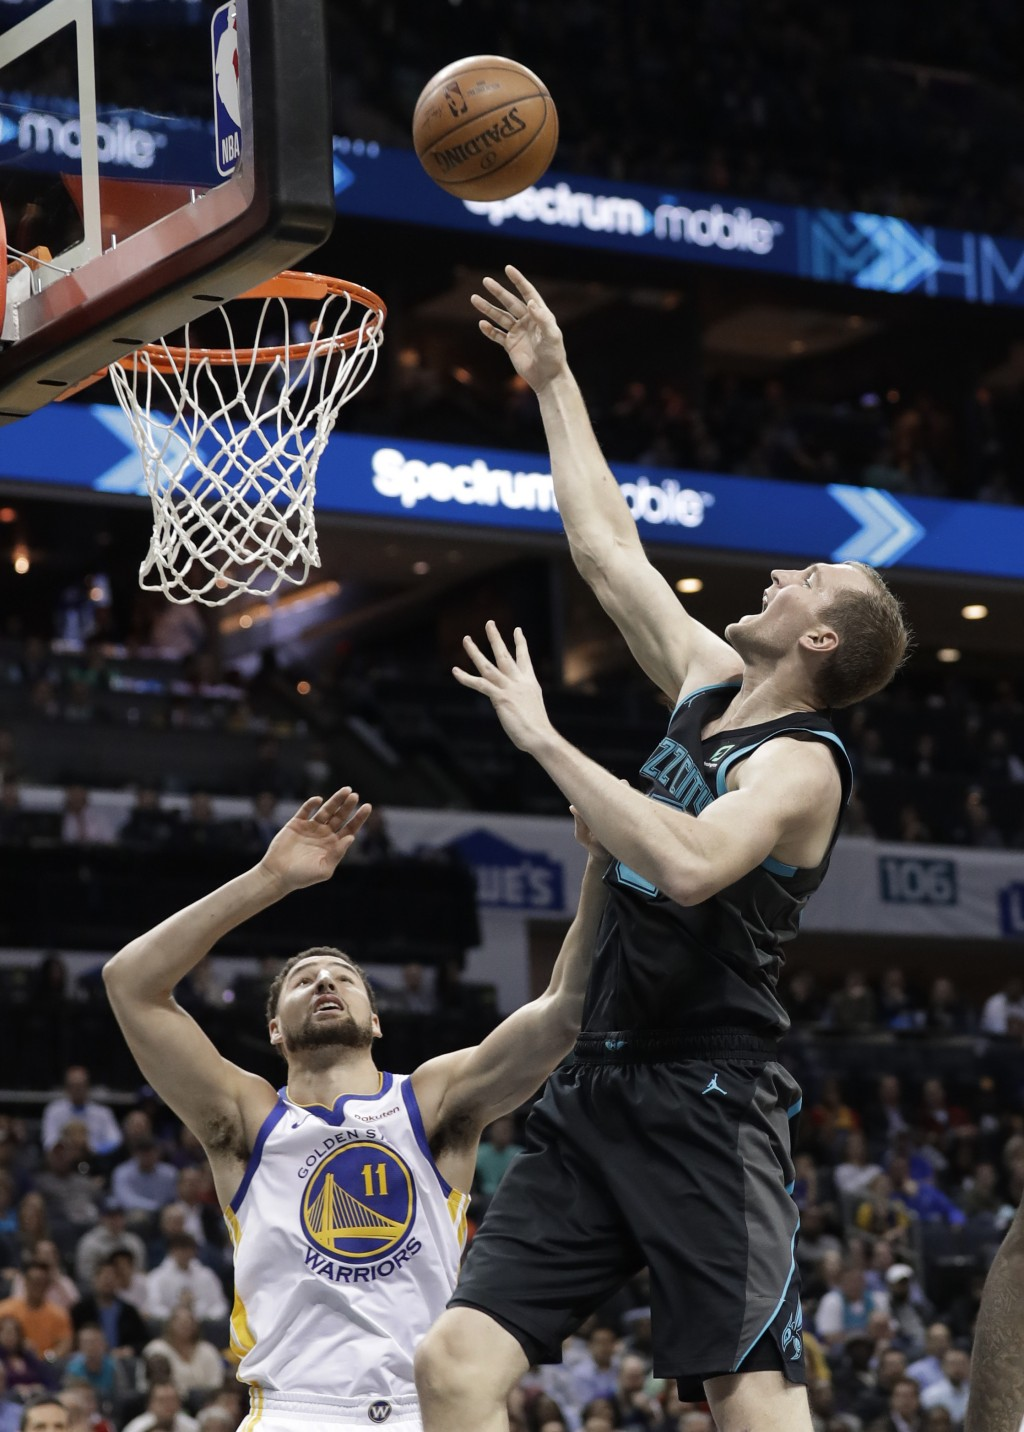 Charlotte Hornets' Cody Zeller, right, drives against Golden State Warriors' Klay Thompson (11) during the first half of an NBA basketball game in Cha